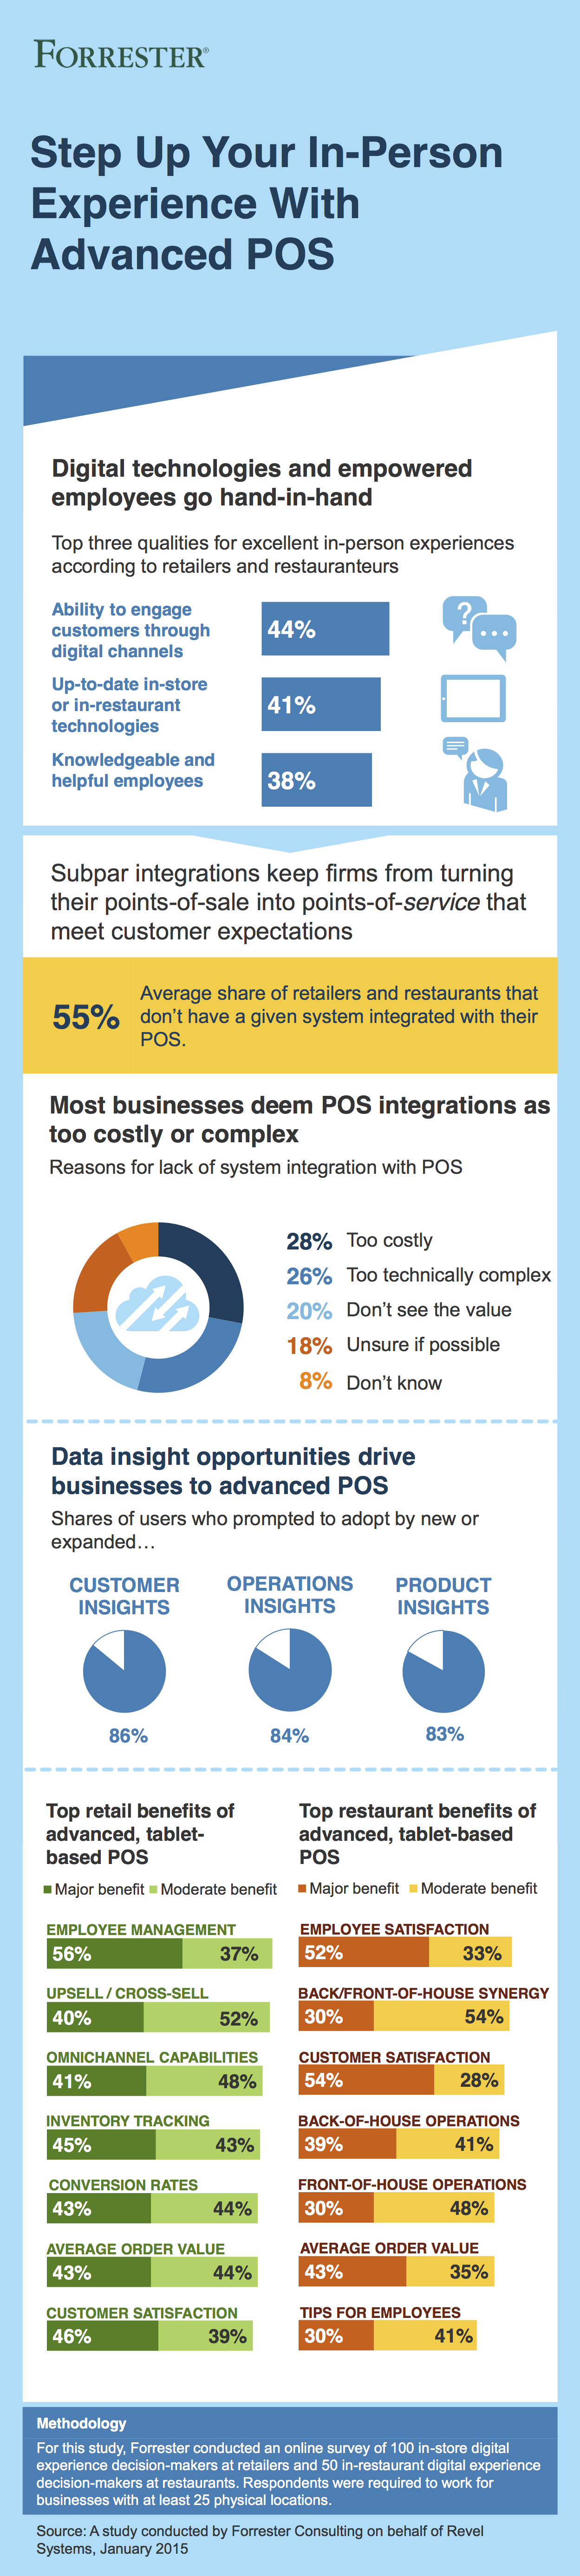 Forrester Infographic